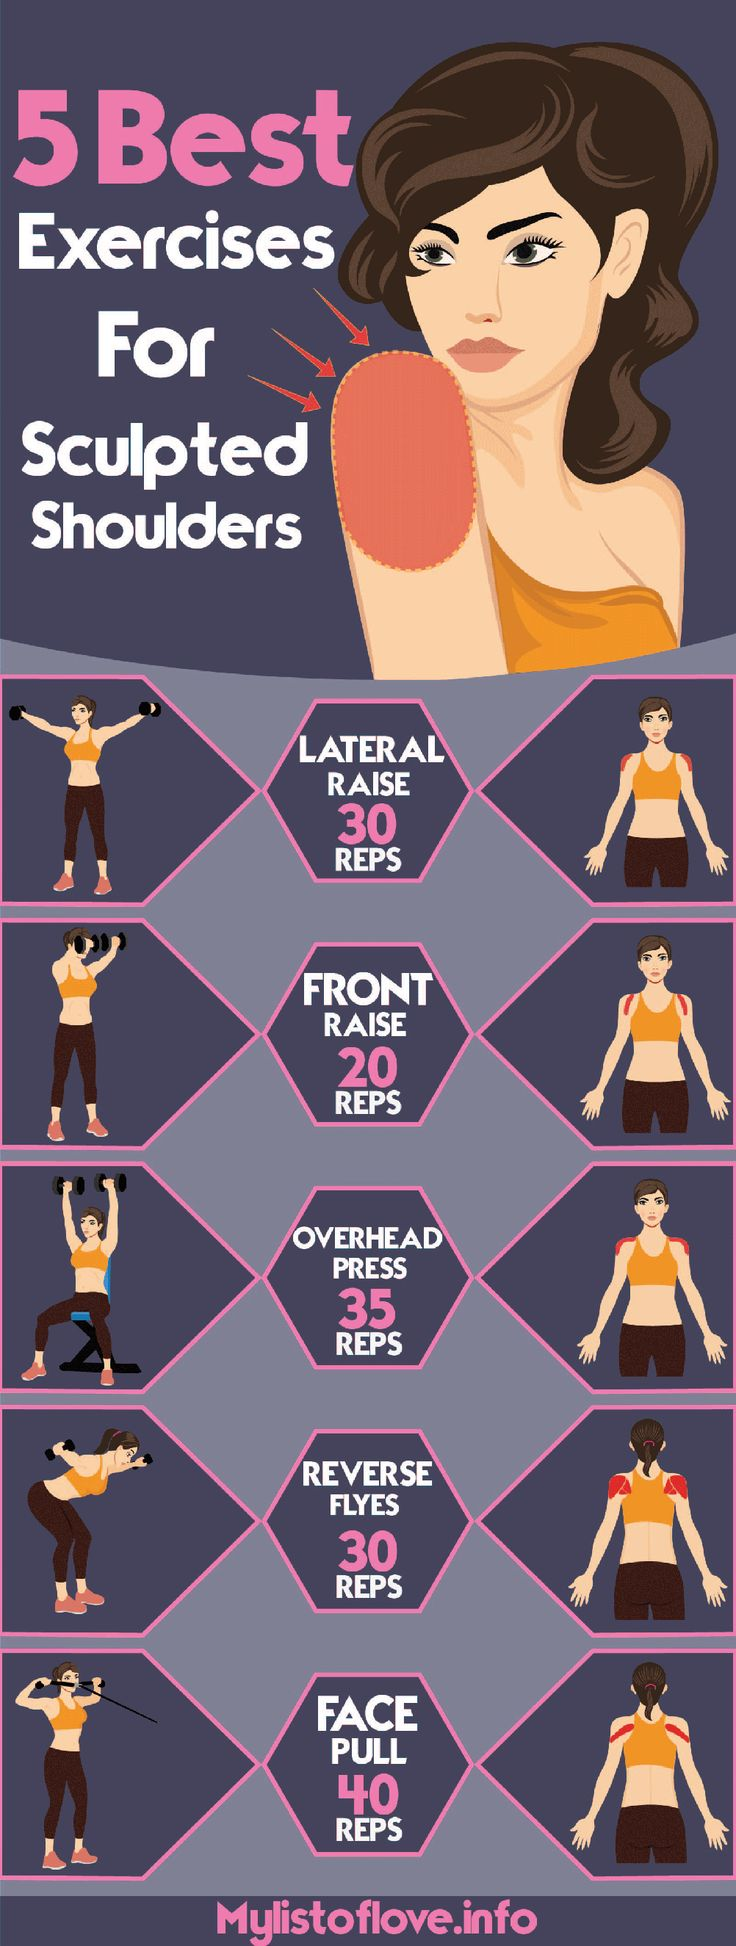 How to lose 30 pounds in 2 weeks exercise shoulder